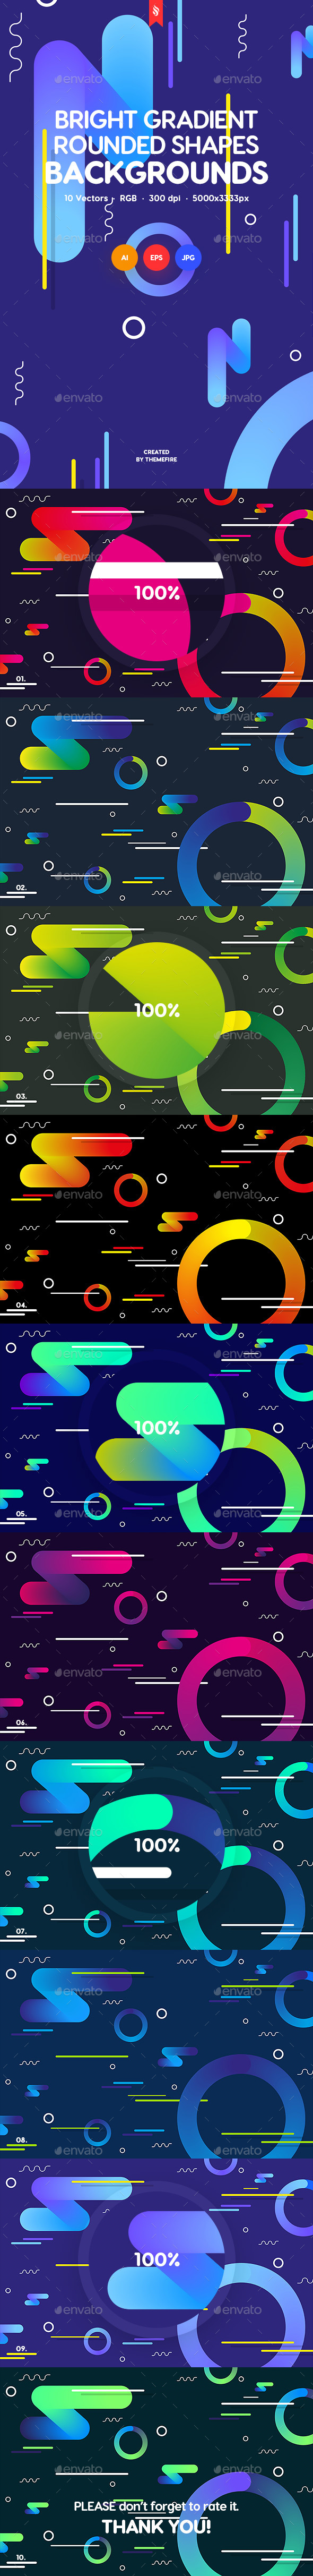 Bright Gradient Rounded Shapes Backgrounds - Backgrounds Graphics